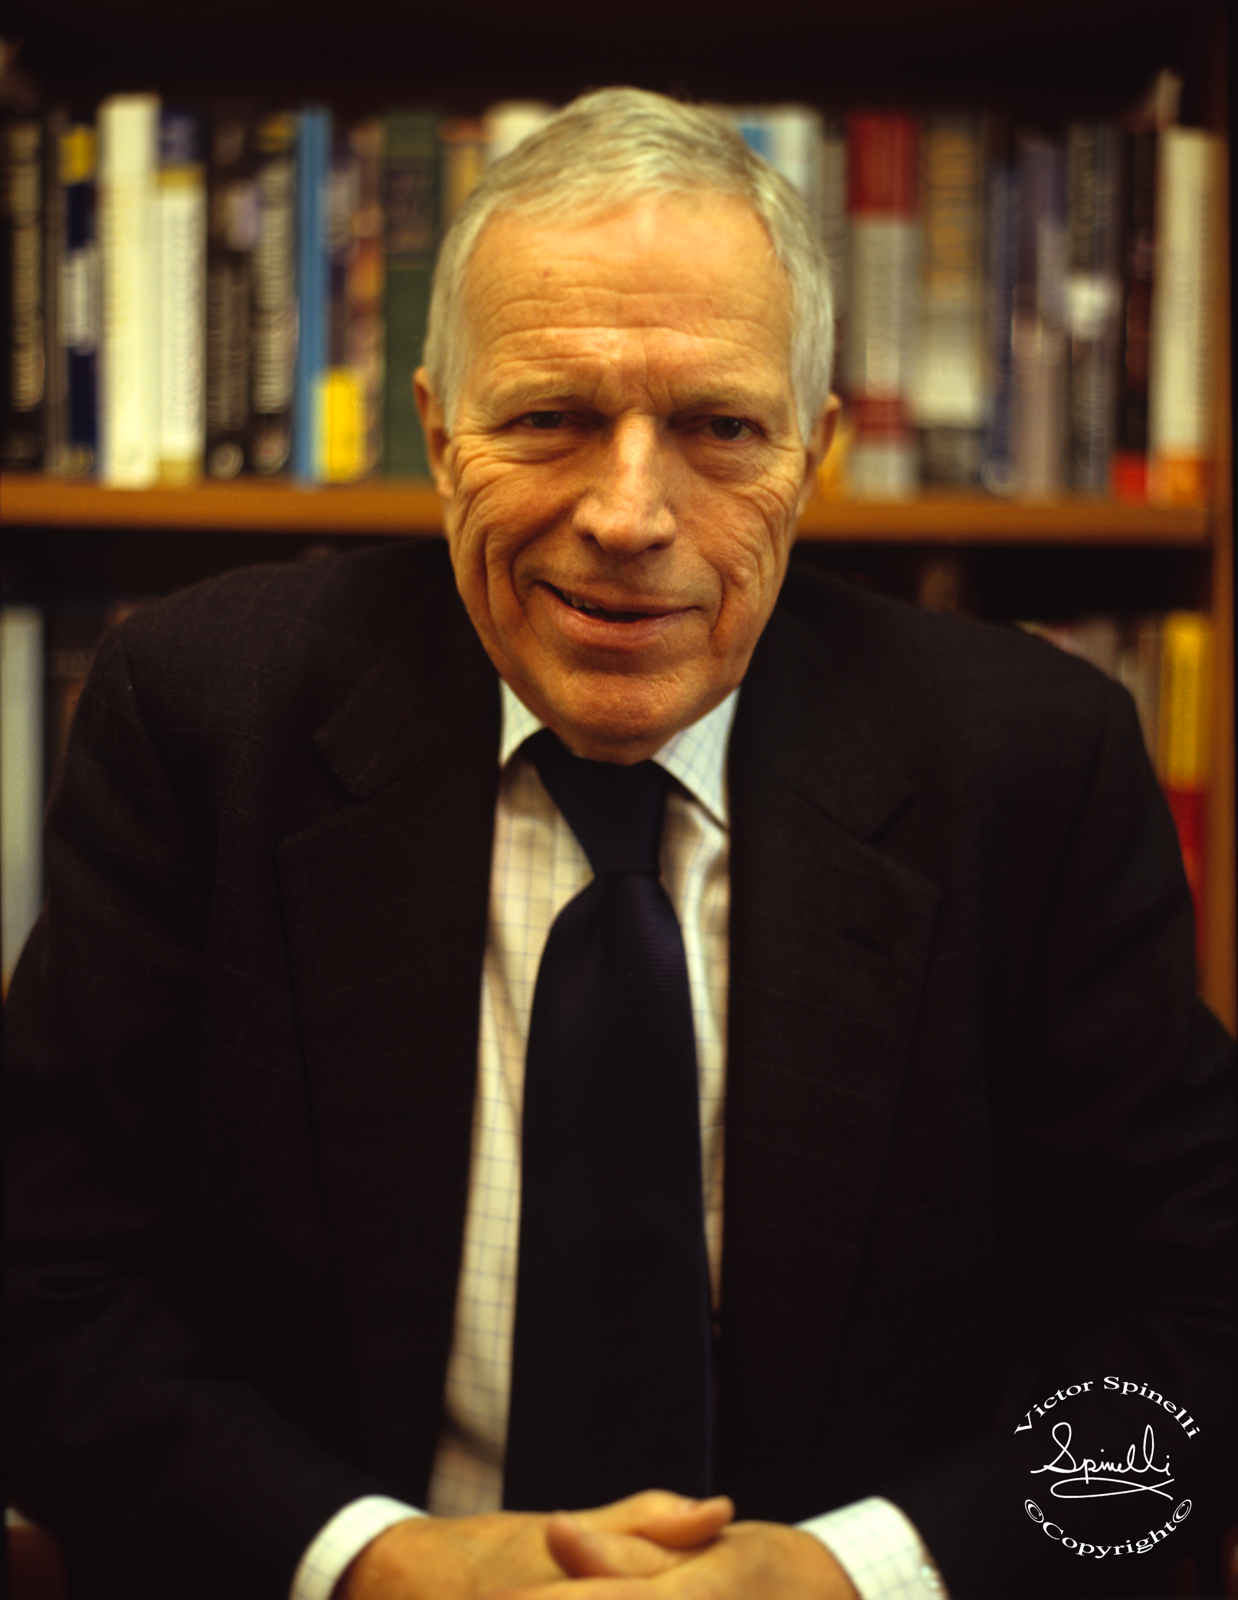 Professor Edmund Phelps, a portrait from my Nobel Prize Winner Series. Professor Phelps won the Nobel Economic Sciences Prize in 2006. I took this portrait of him at Columbia University where he continues asMcVickar Professor of Political Economy and also Director of Columbia's Center on Capitalism and Society. ©   More information about Professor Phelps can be found here:  http://www.edmundphelps.com/